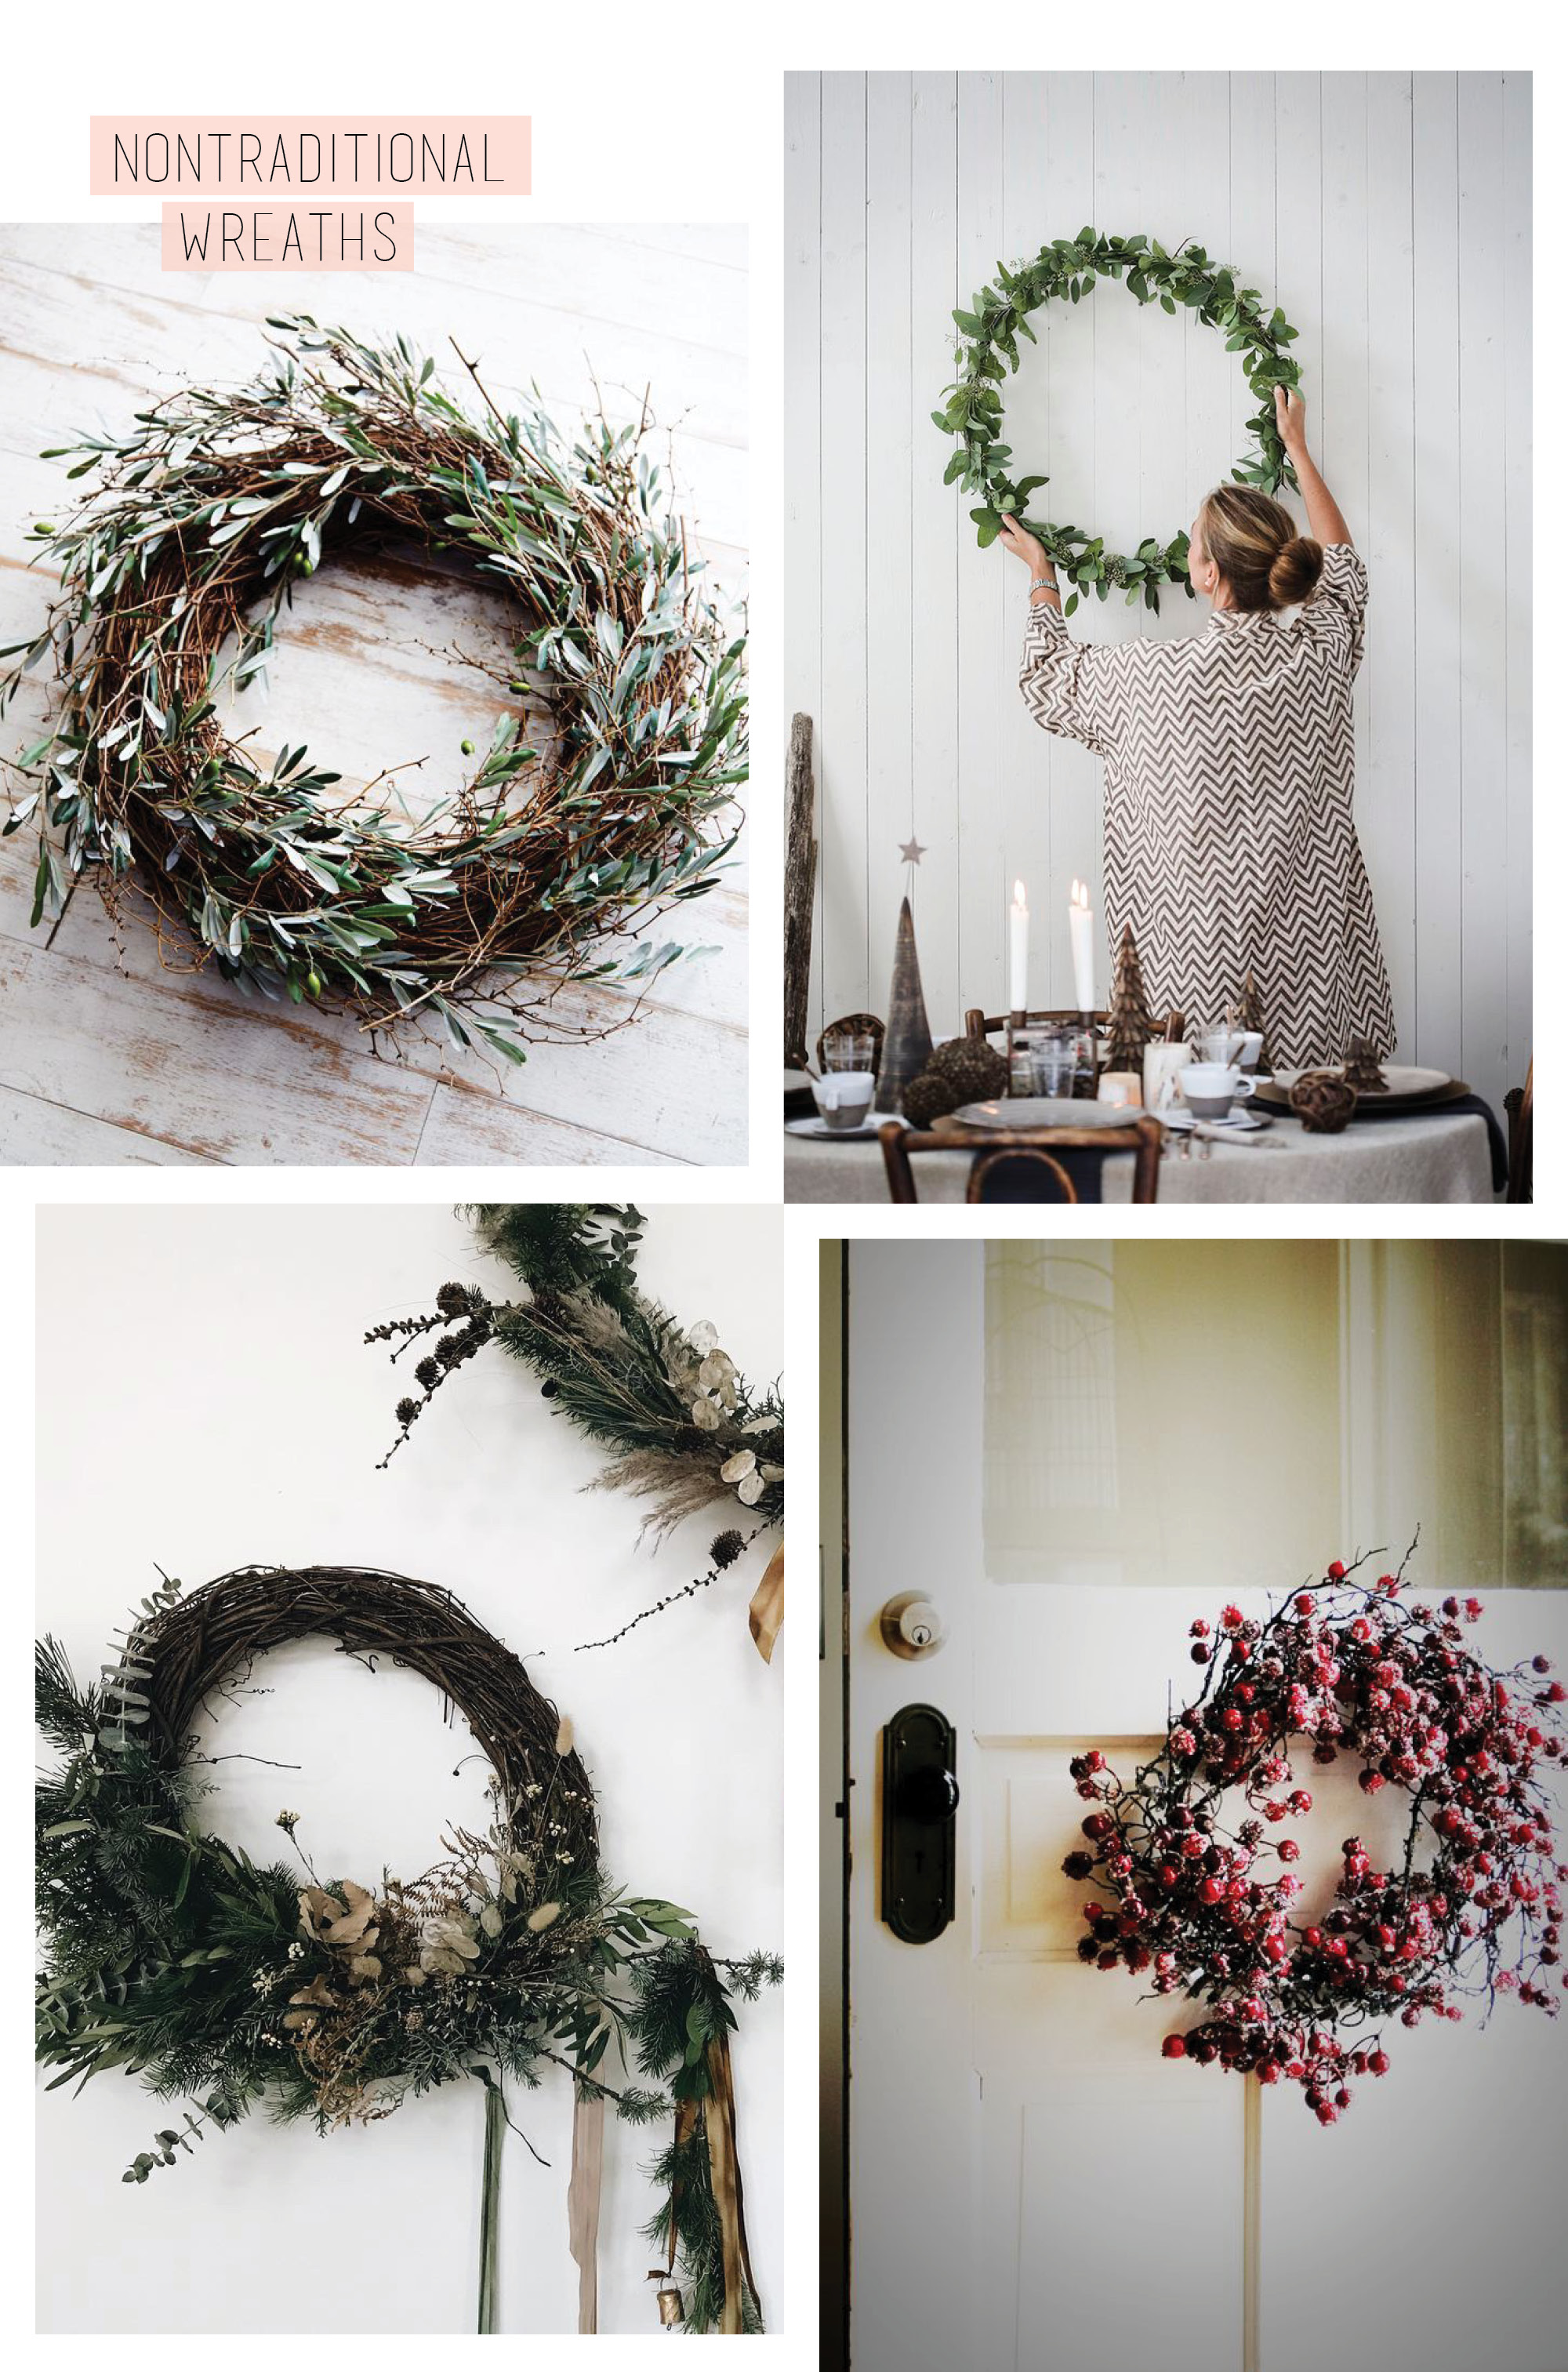 non-traditional wreaths.jpg